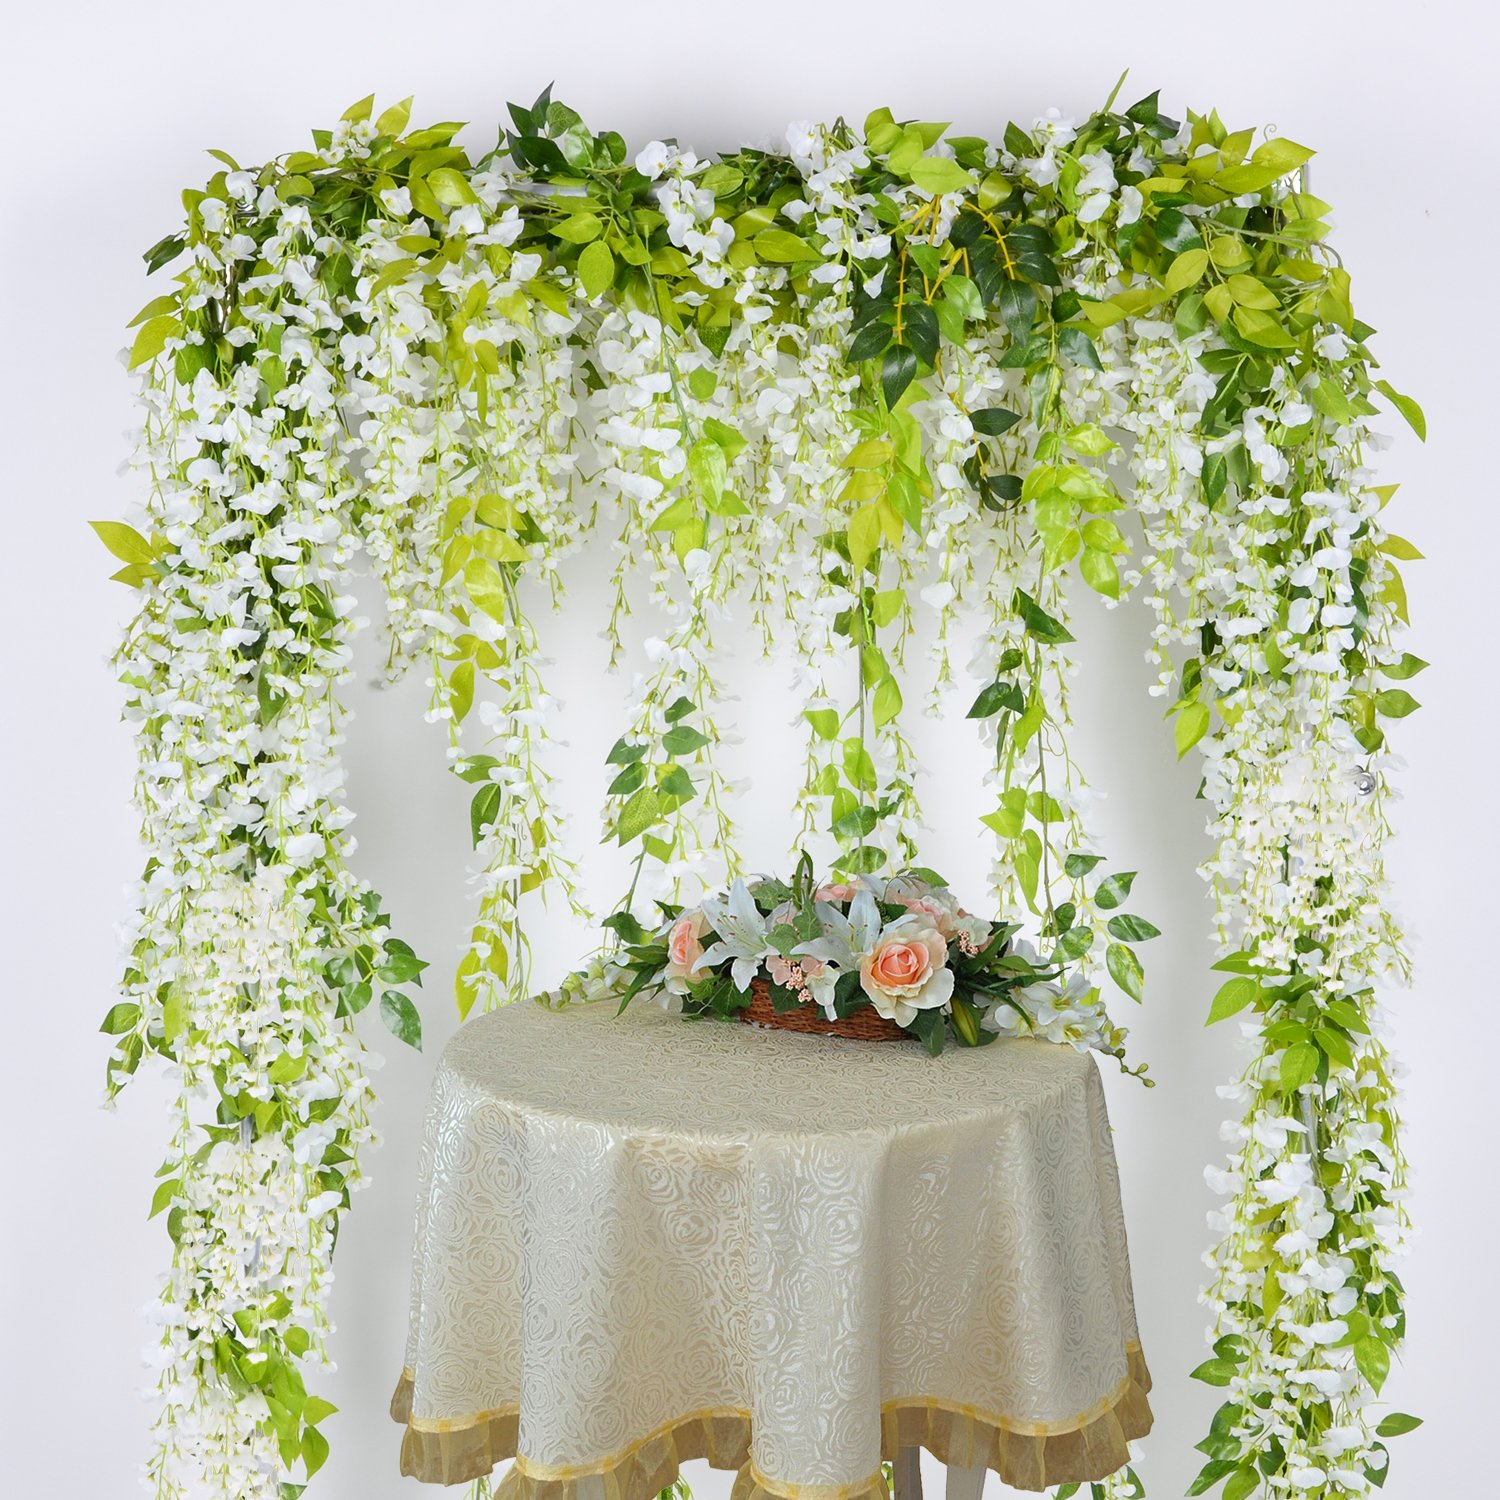 Lvydec wisteria artificial flowers garland 4pcs total 288ft white lvydec wisteria artificial flowers garland 4pcs total 288ft white artificial wisteria vine silk hanging flower izmirmasajfo